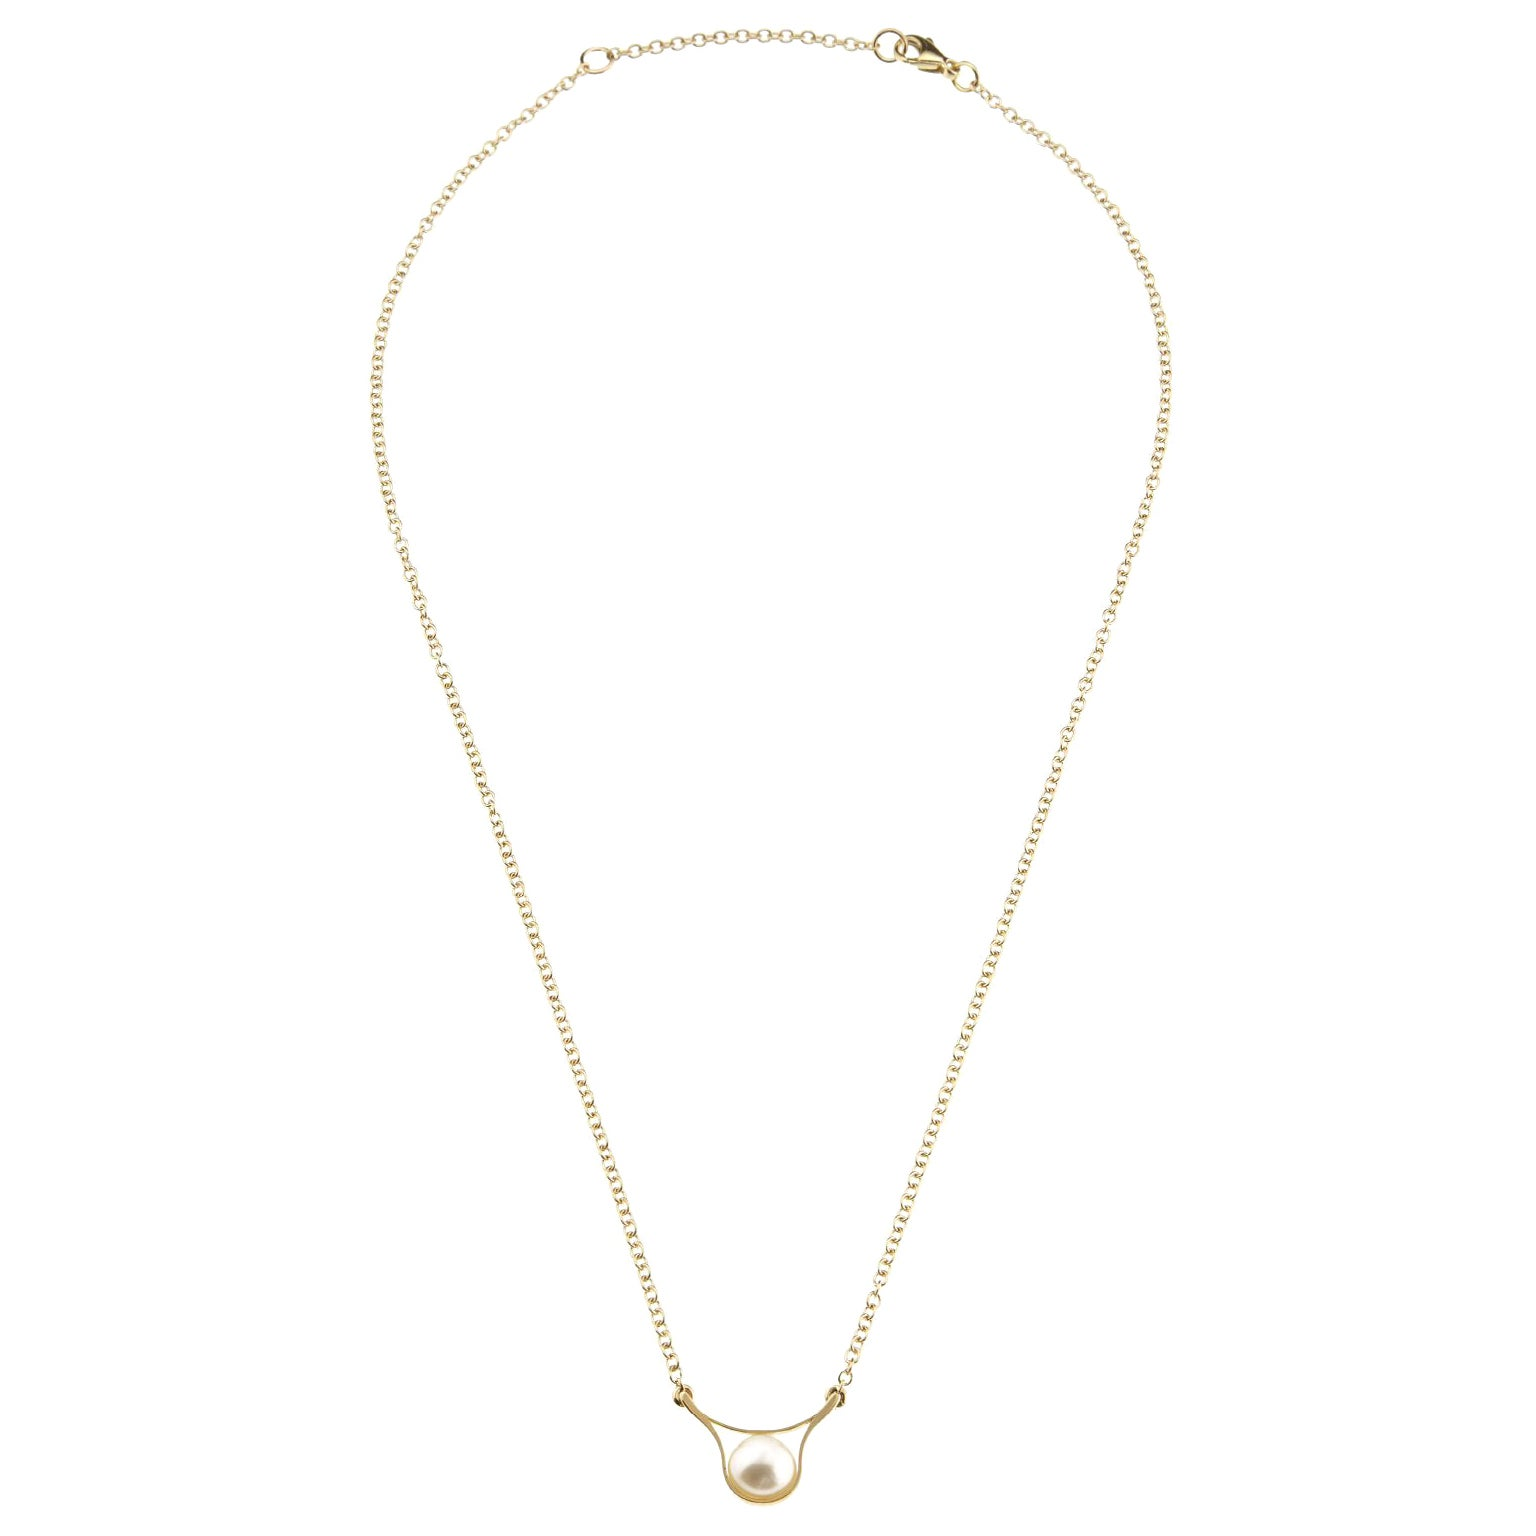 Nathalie Jean Contemporary Pearl Yellow Gold Pendant Drop Chain Necklace